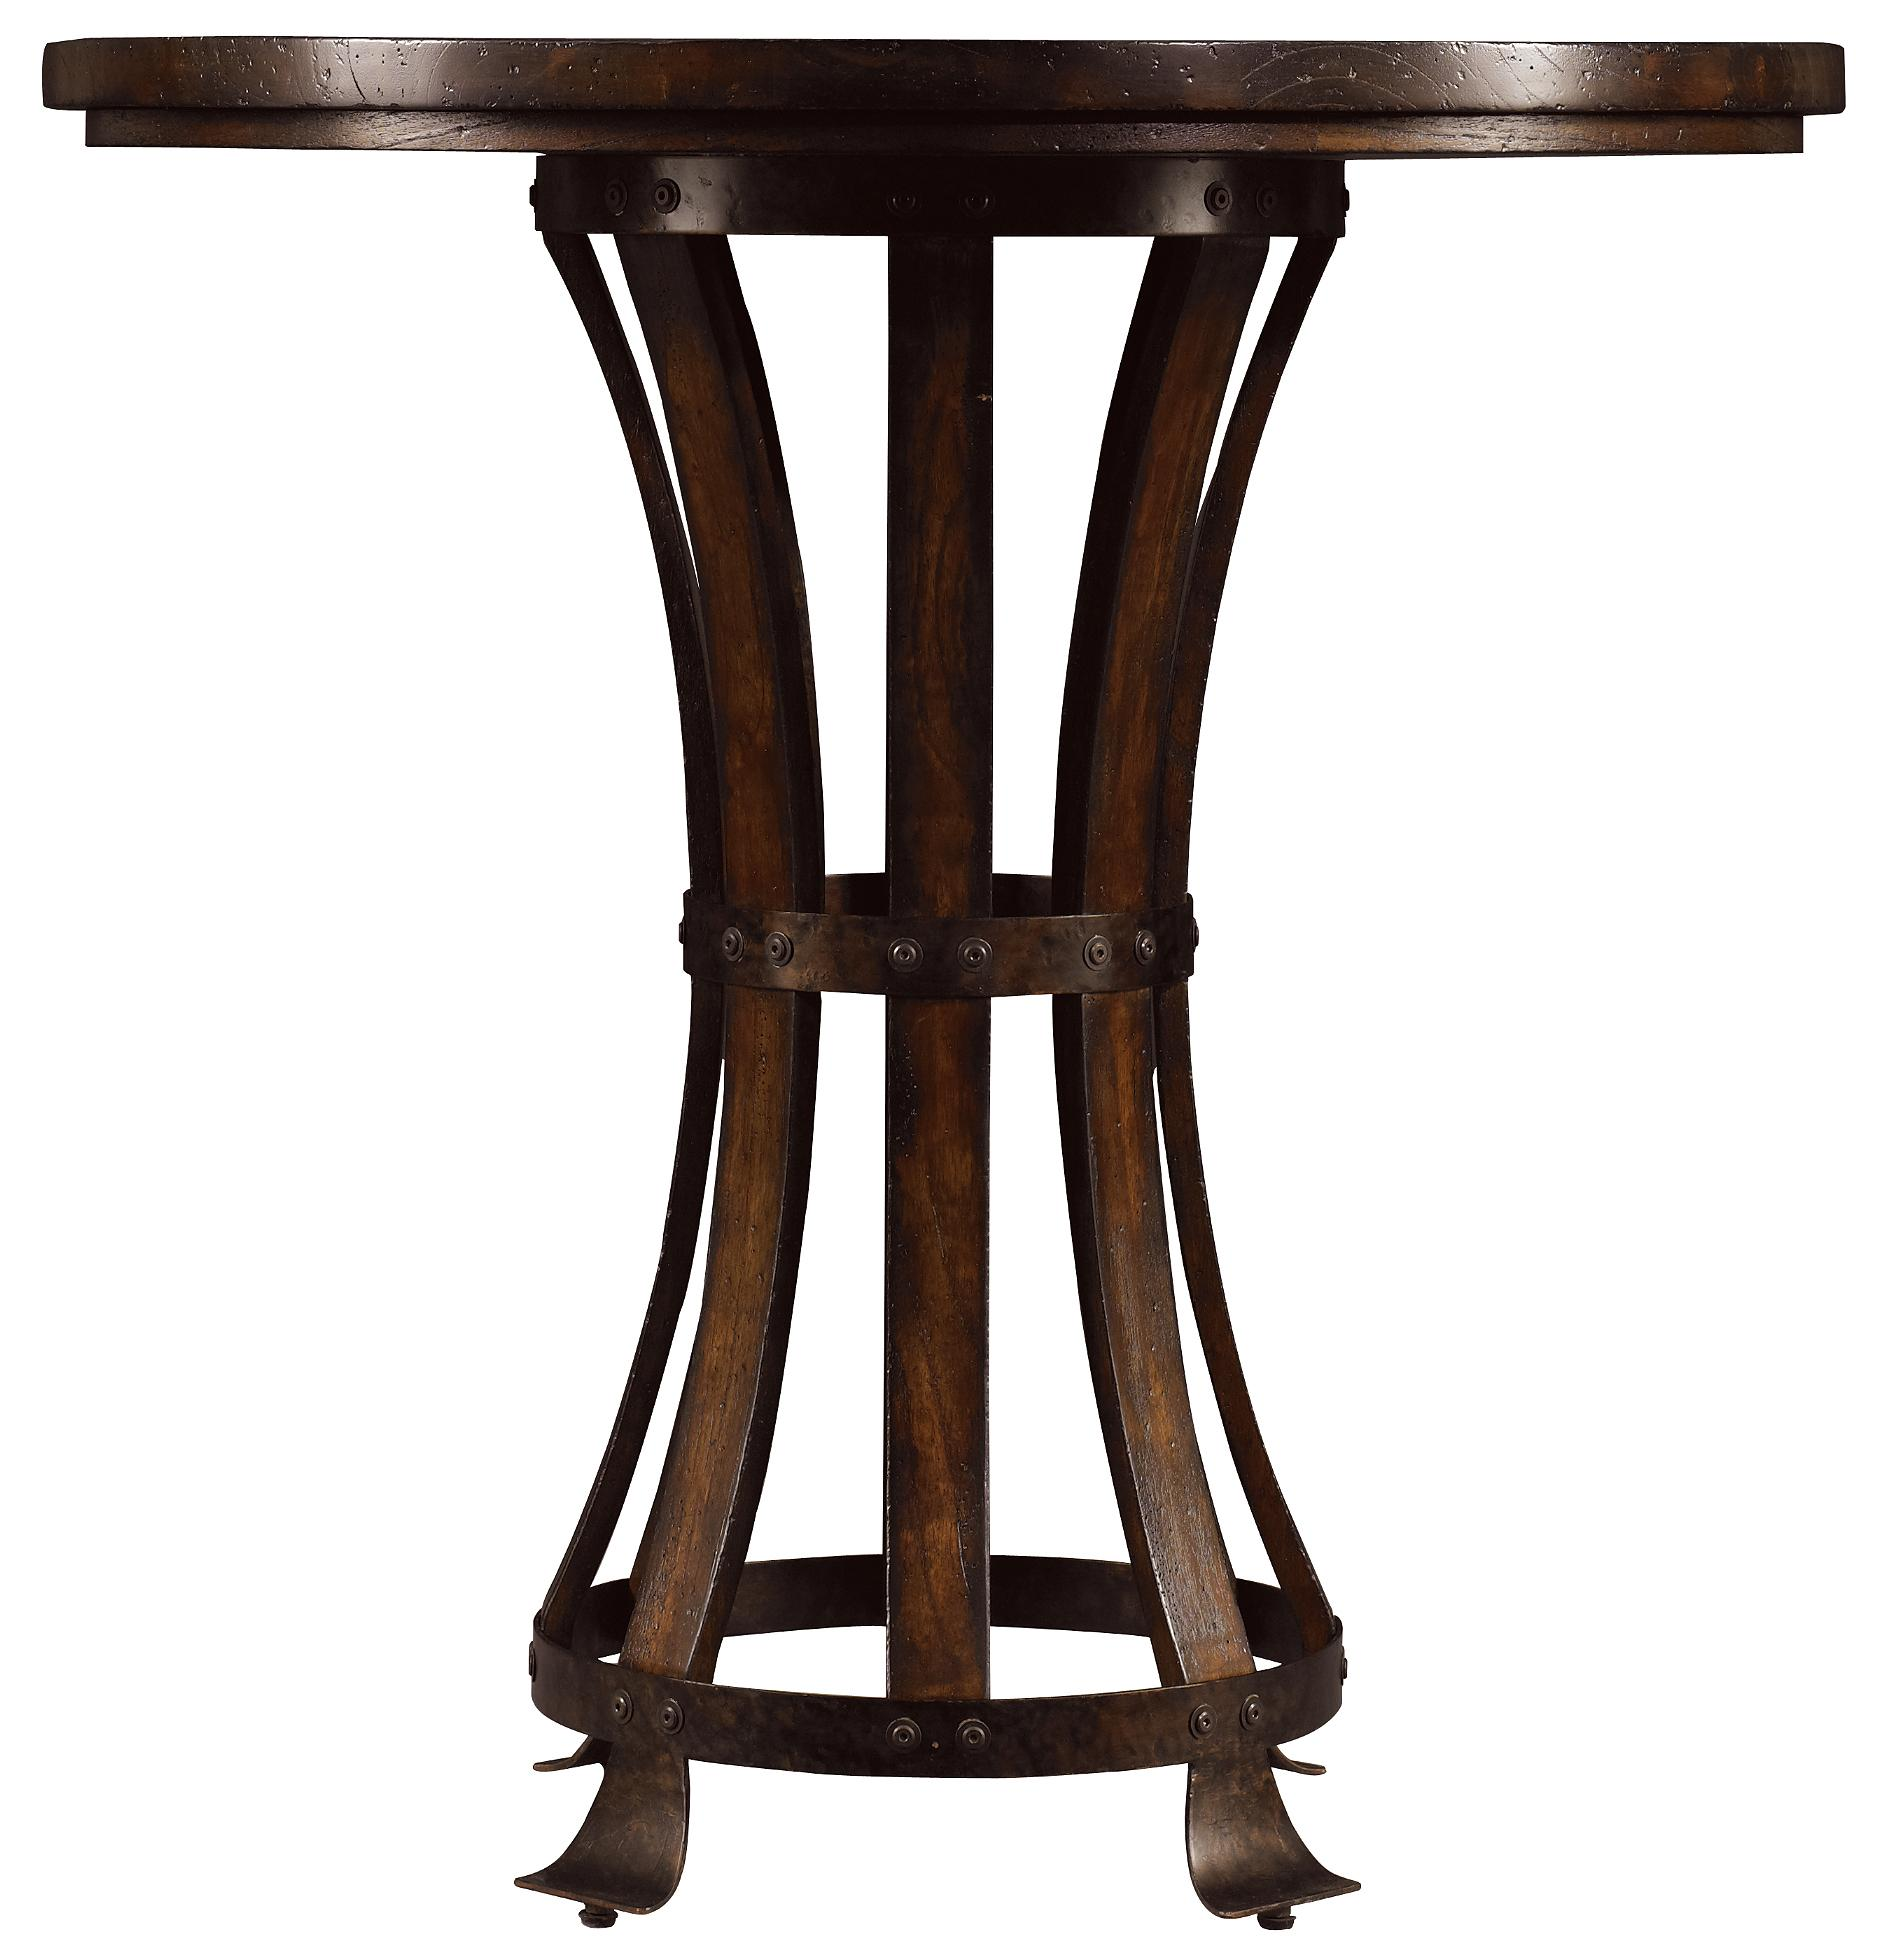 Stanley Furniture European Farmhouse Winemaker's Tasting Table - Item Number: 018-11-34